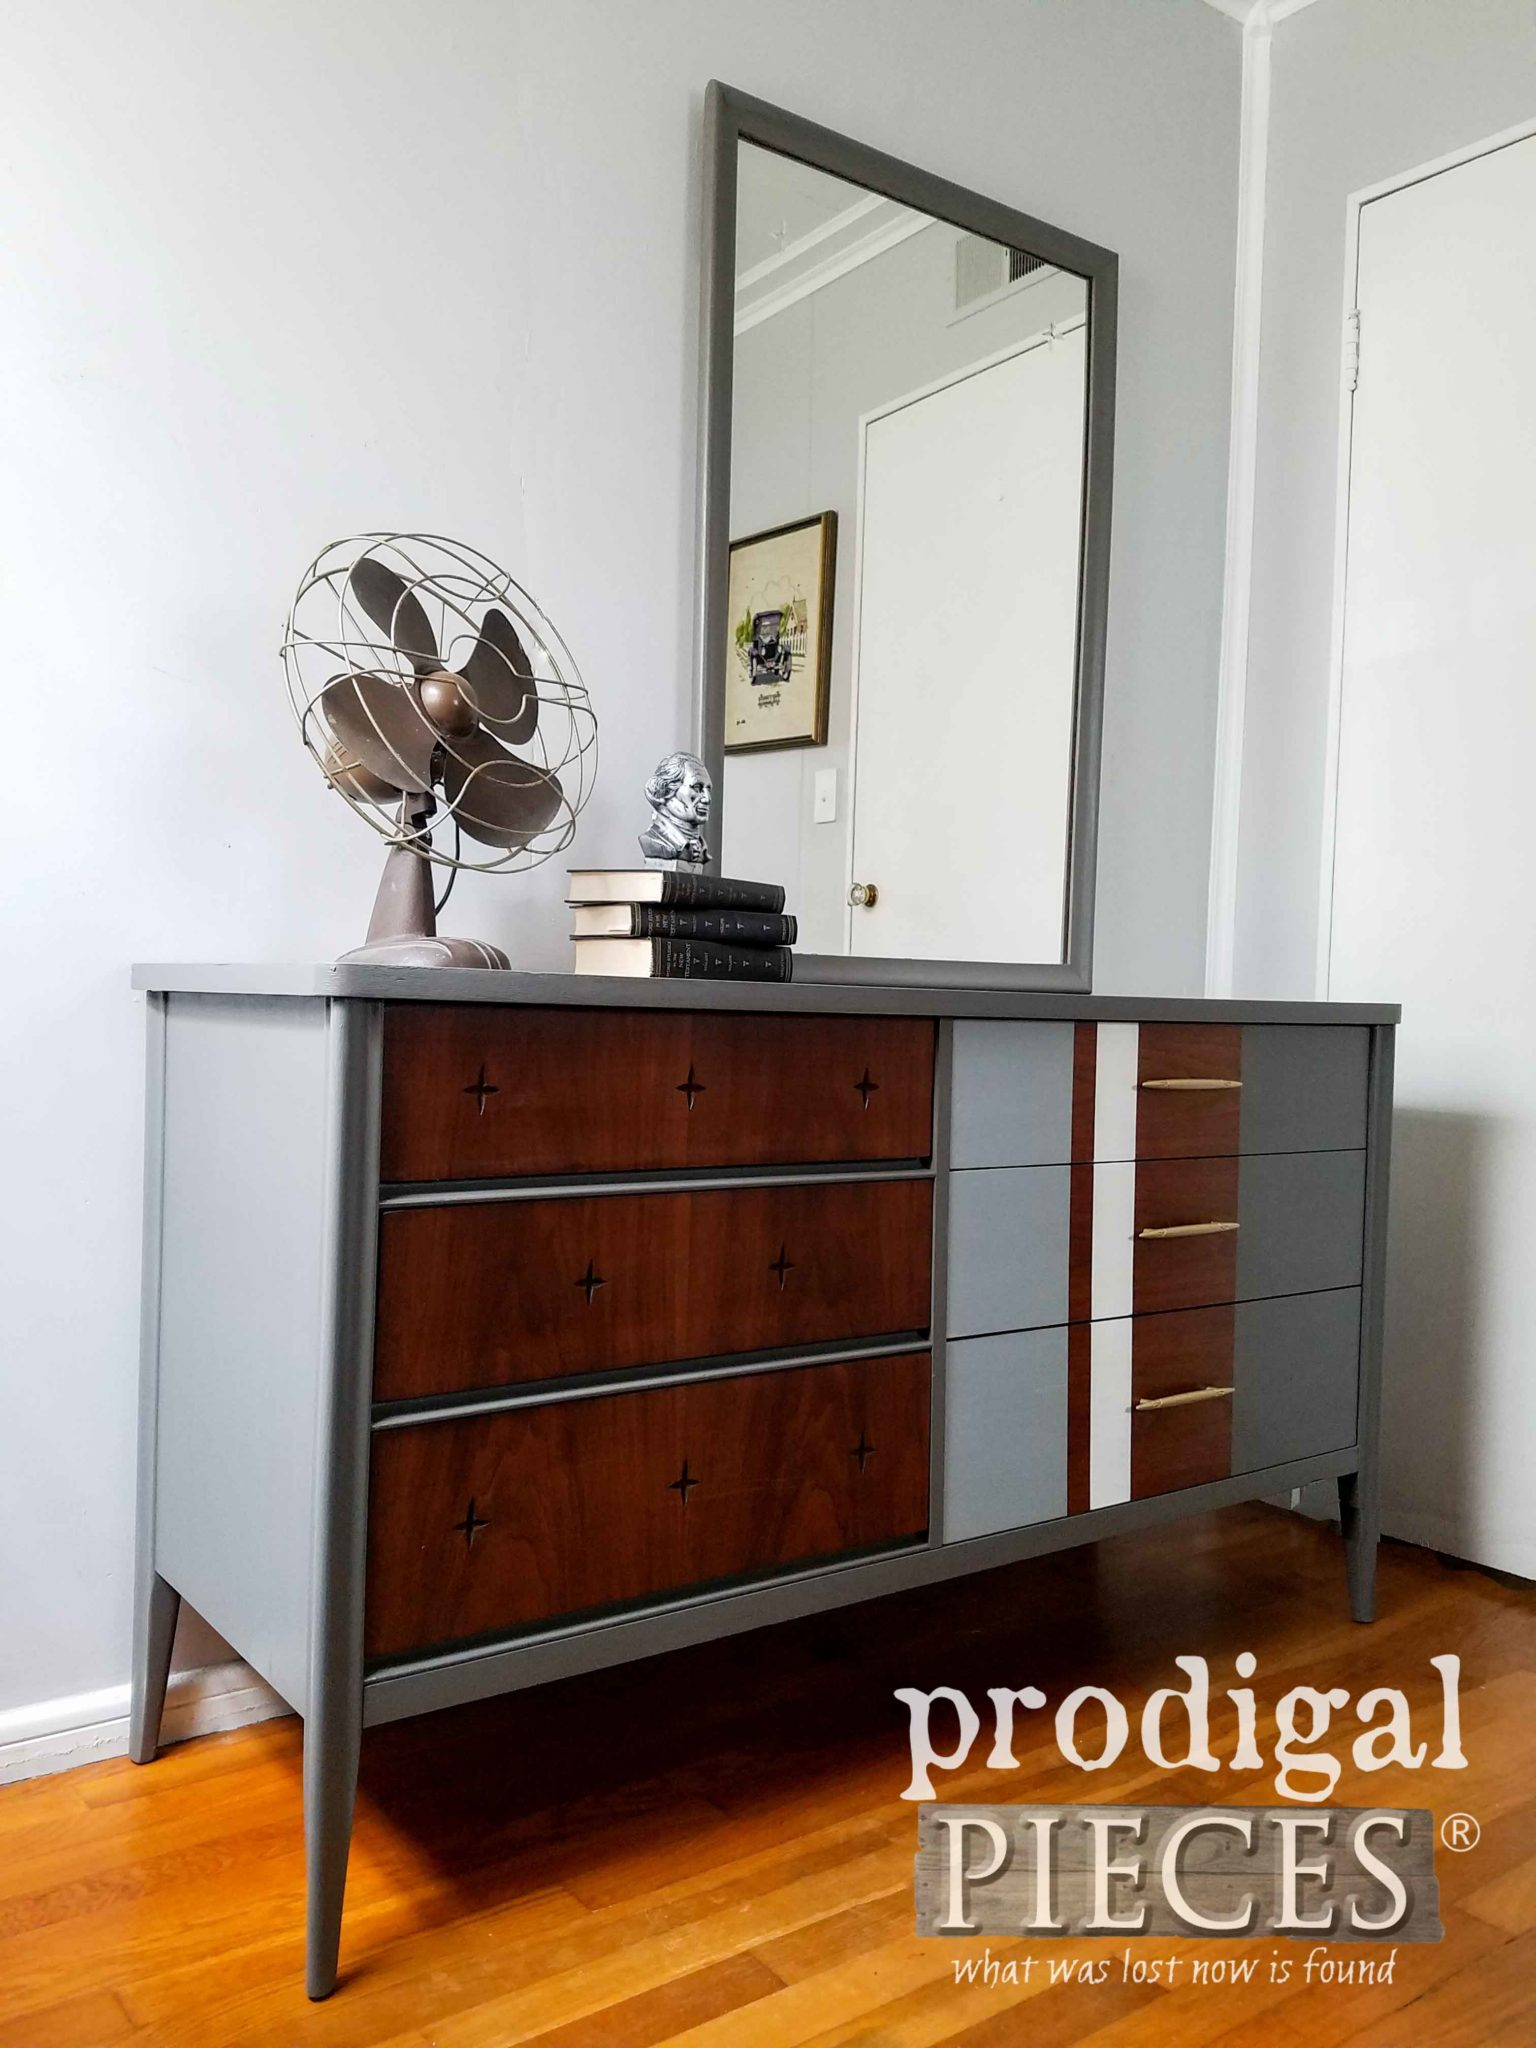 Vintage Broyhill Saga Mirrored Dresser with Modern Chic Vibe by Prodigal Pieces | prodigalpieces.com